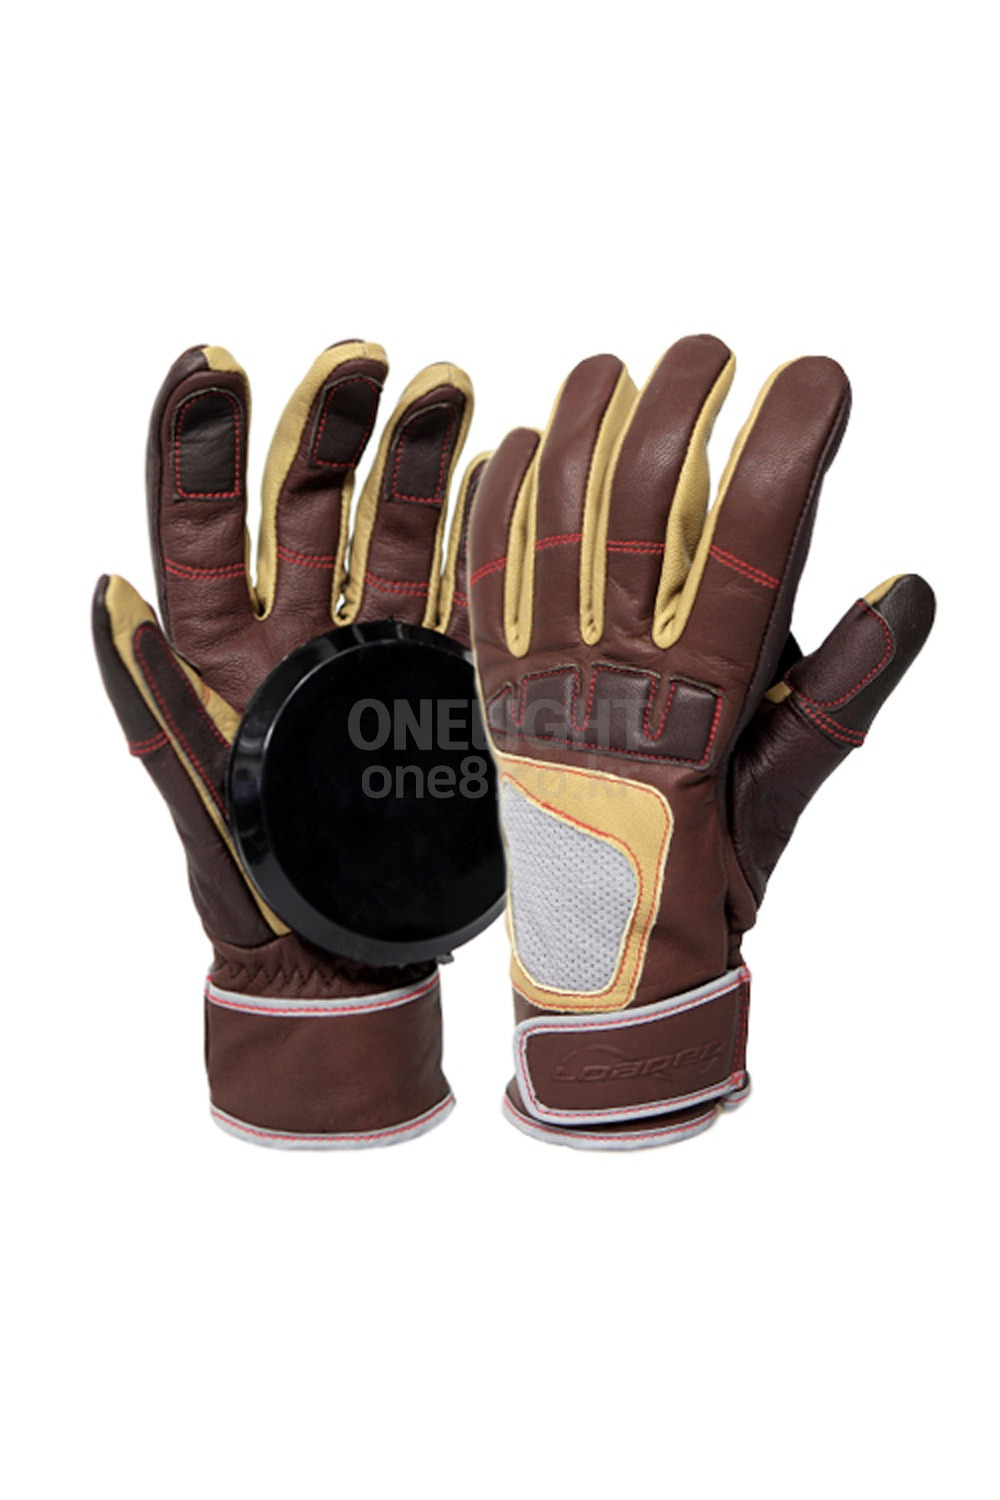 로디드 롱보드 프리라이드 글러브/DLD602TB_LOADED_ADVANCED FREERIDE GLOVES_BROWN/TAN_SDLD602TB